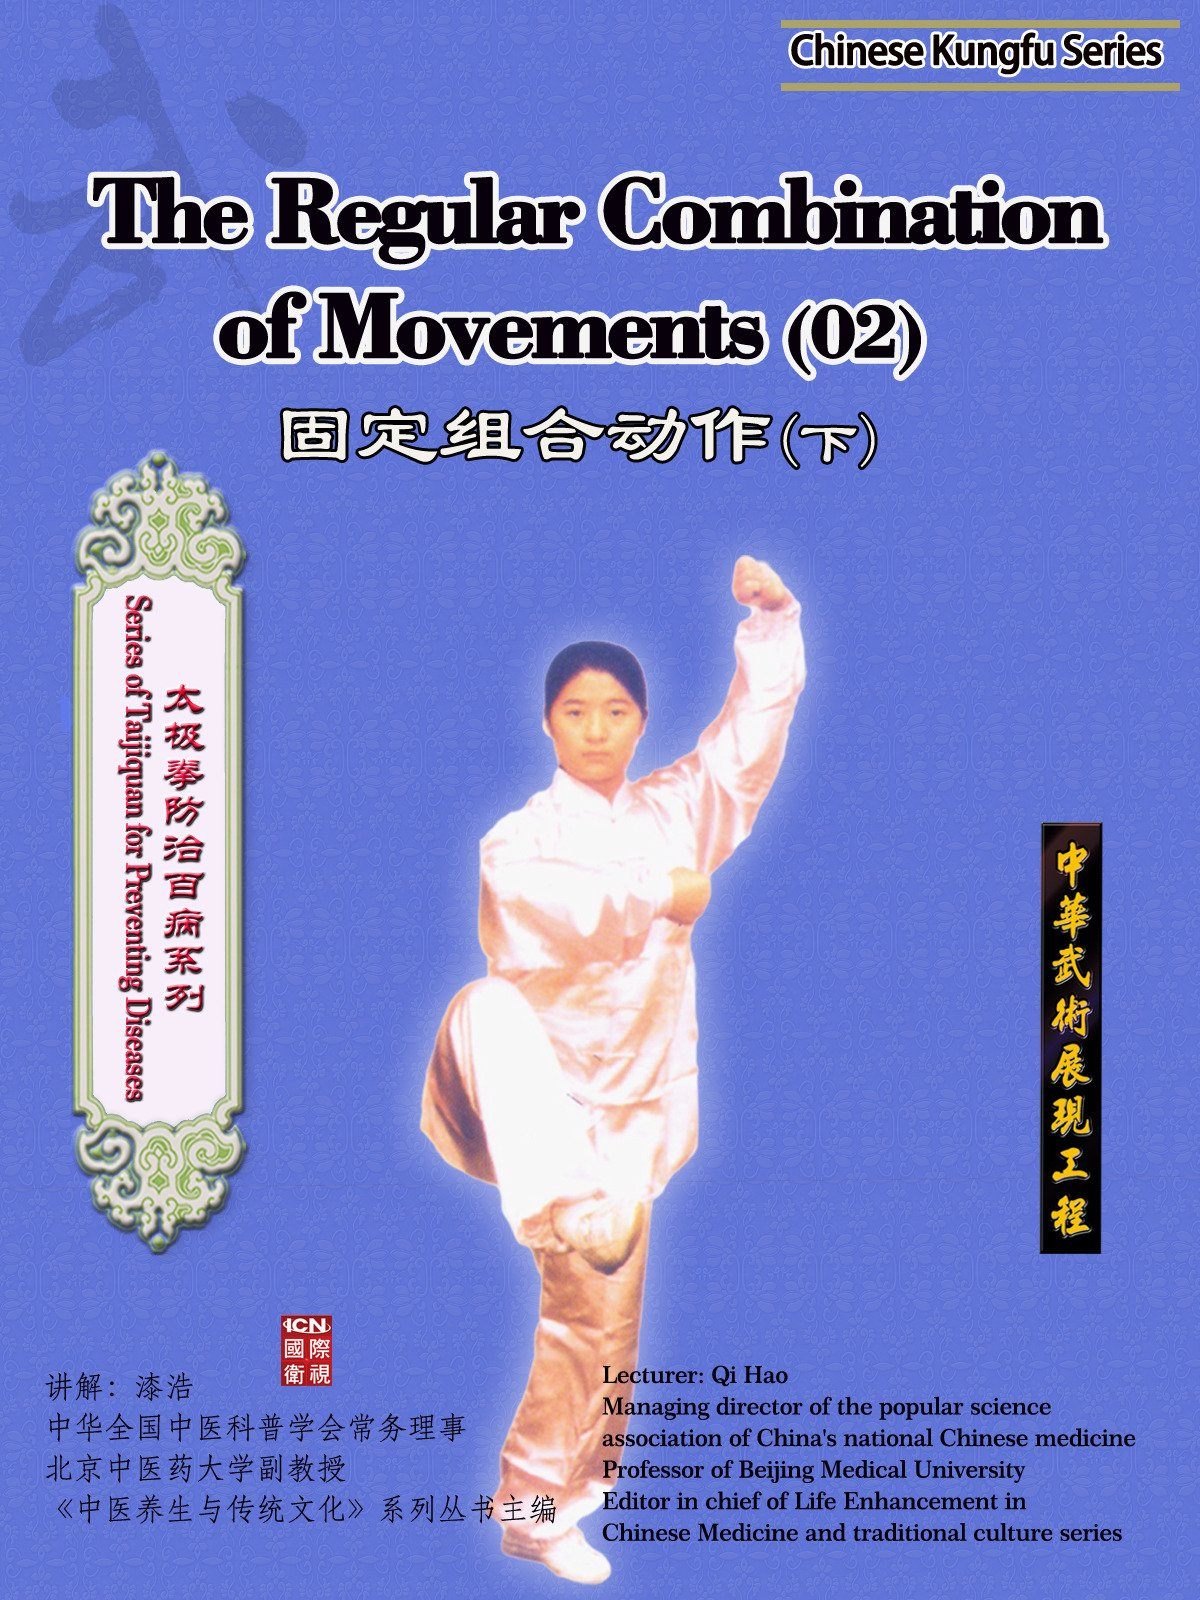 Series of Taijiquan for Preventing Diseases-The Regular Combination of Movements(02)